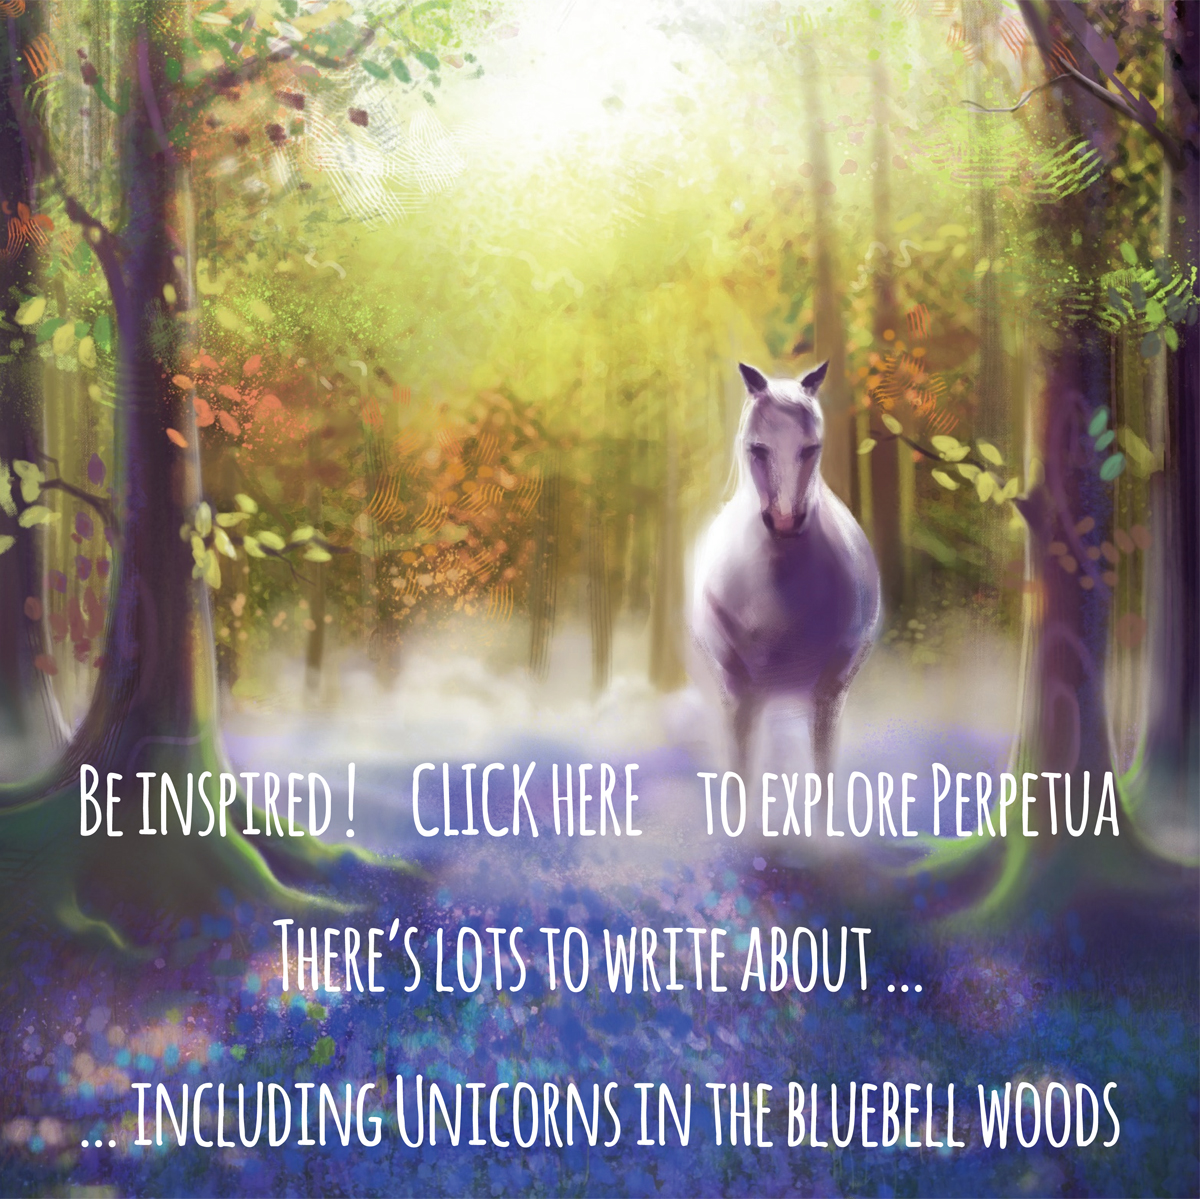 Be inspired ! Explore Perpetua there's lots to write about including Unicorns in the Bluebell Wood